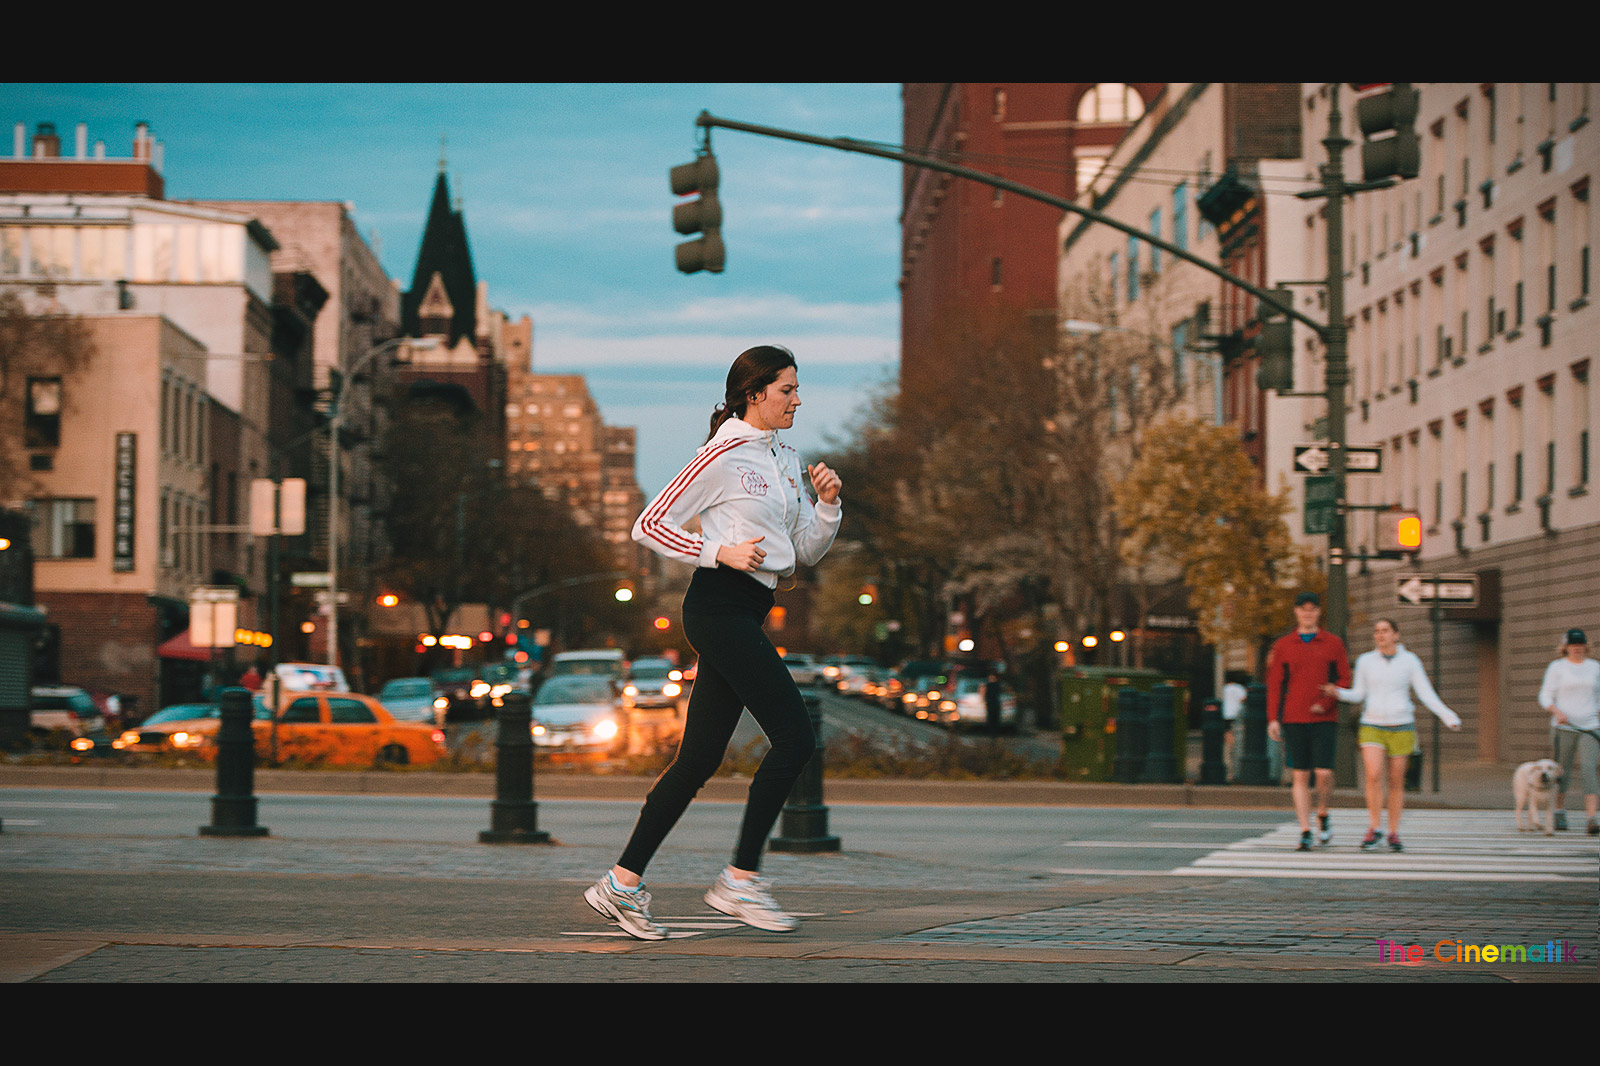 Copy of Adidas young woman jogging in Manhattan Cinematic photography by Kamal Lahmadi / The Cinematik